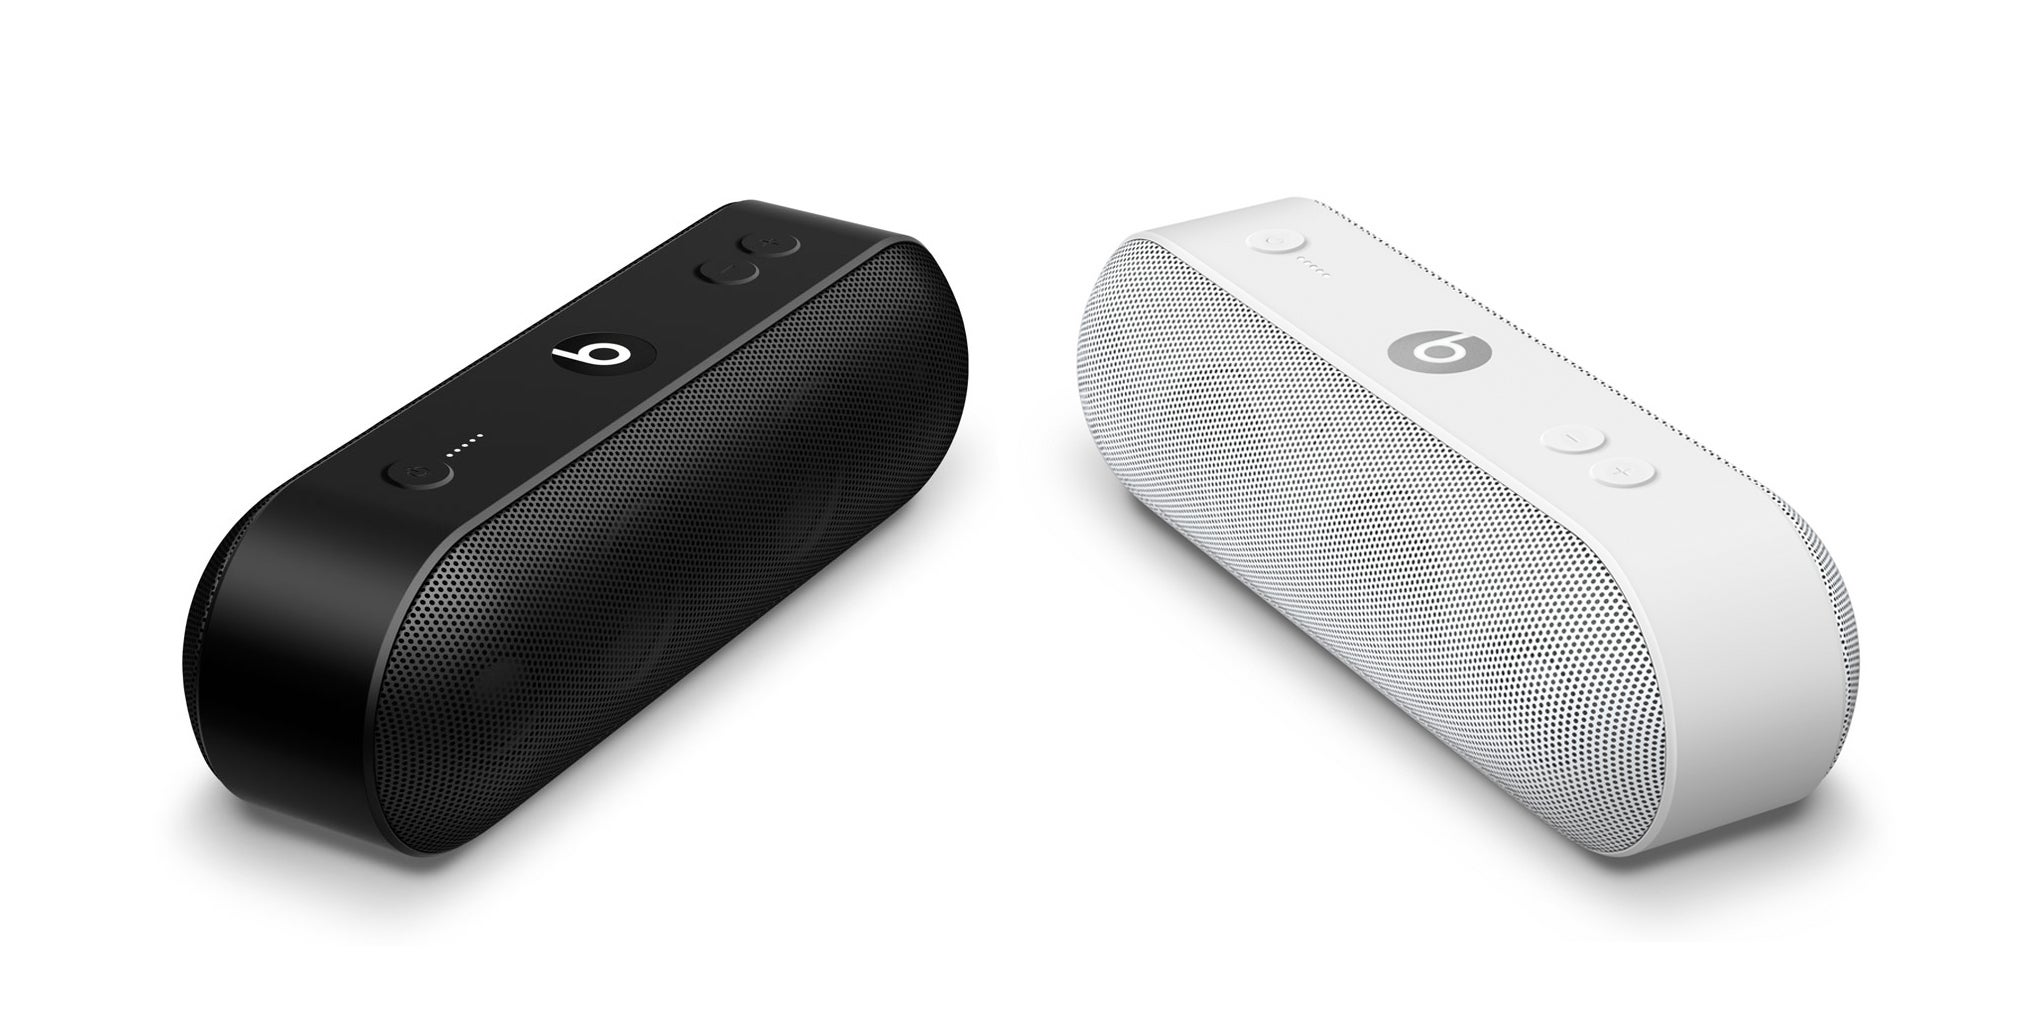 The New Beats Pill+ Looks Like a Rip-Off